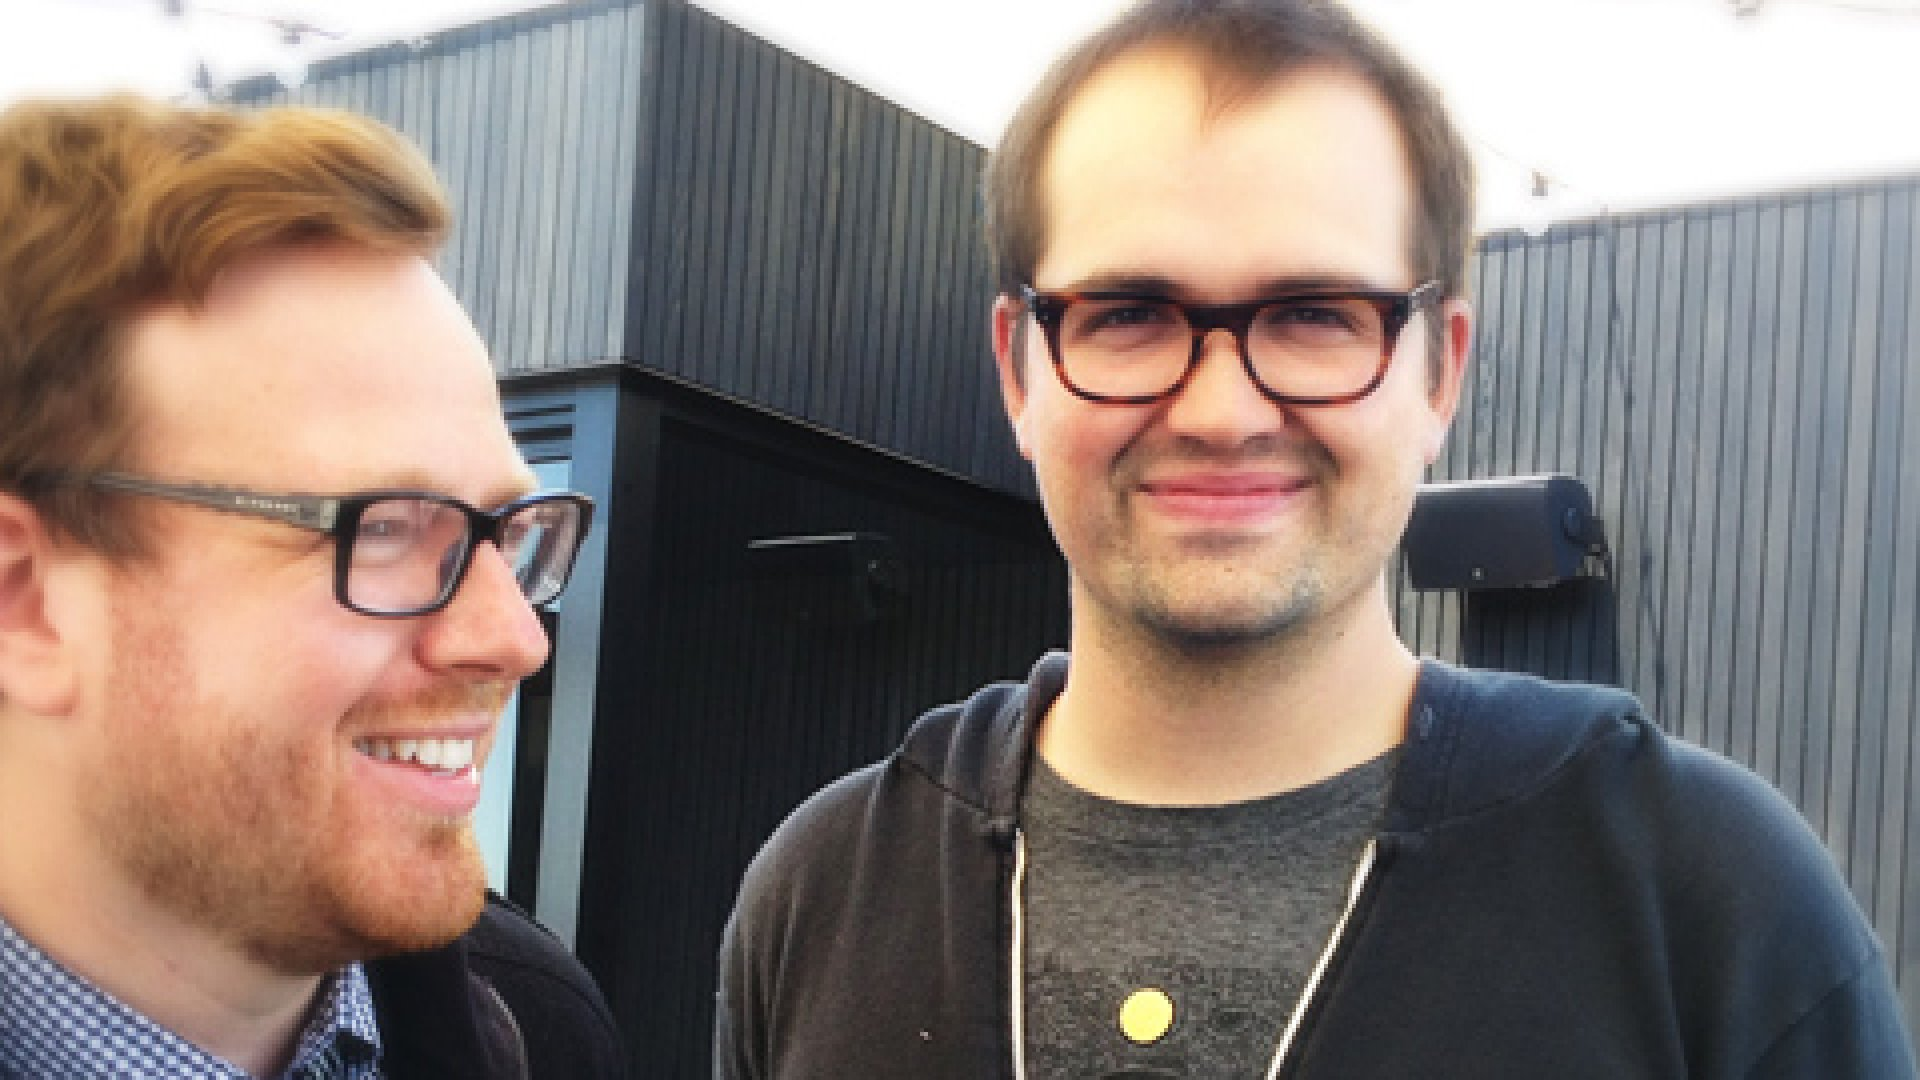 Hipstamatic on Layoffs: 'We Lost Our Focus'